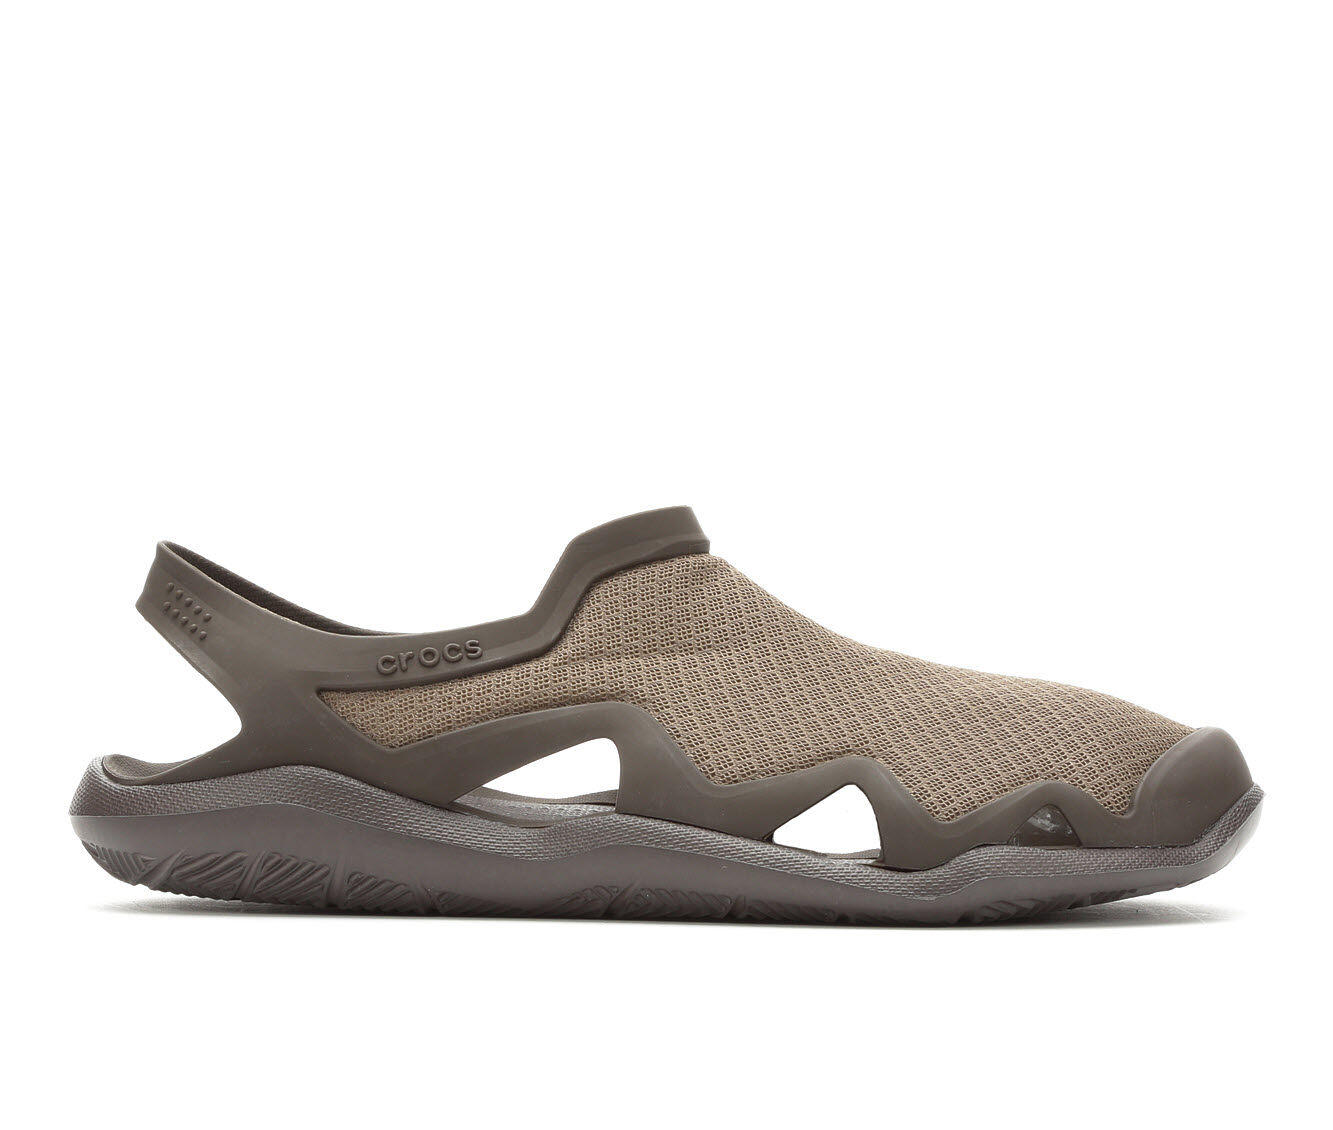 Men's Crocs Swiftwater Mesh Wave Outdoor Sandals Walnut/Espresso